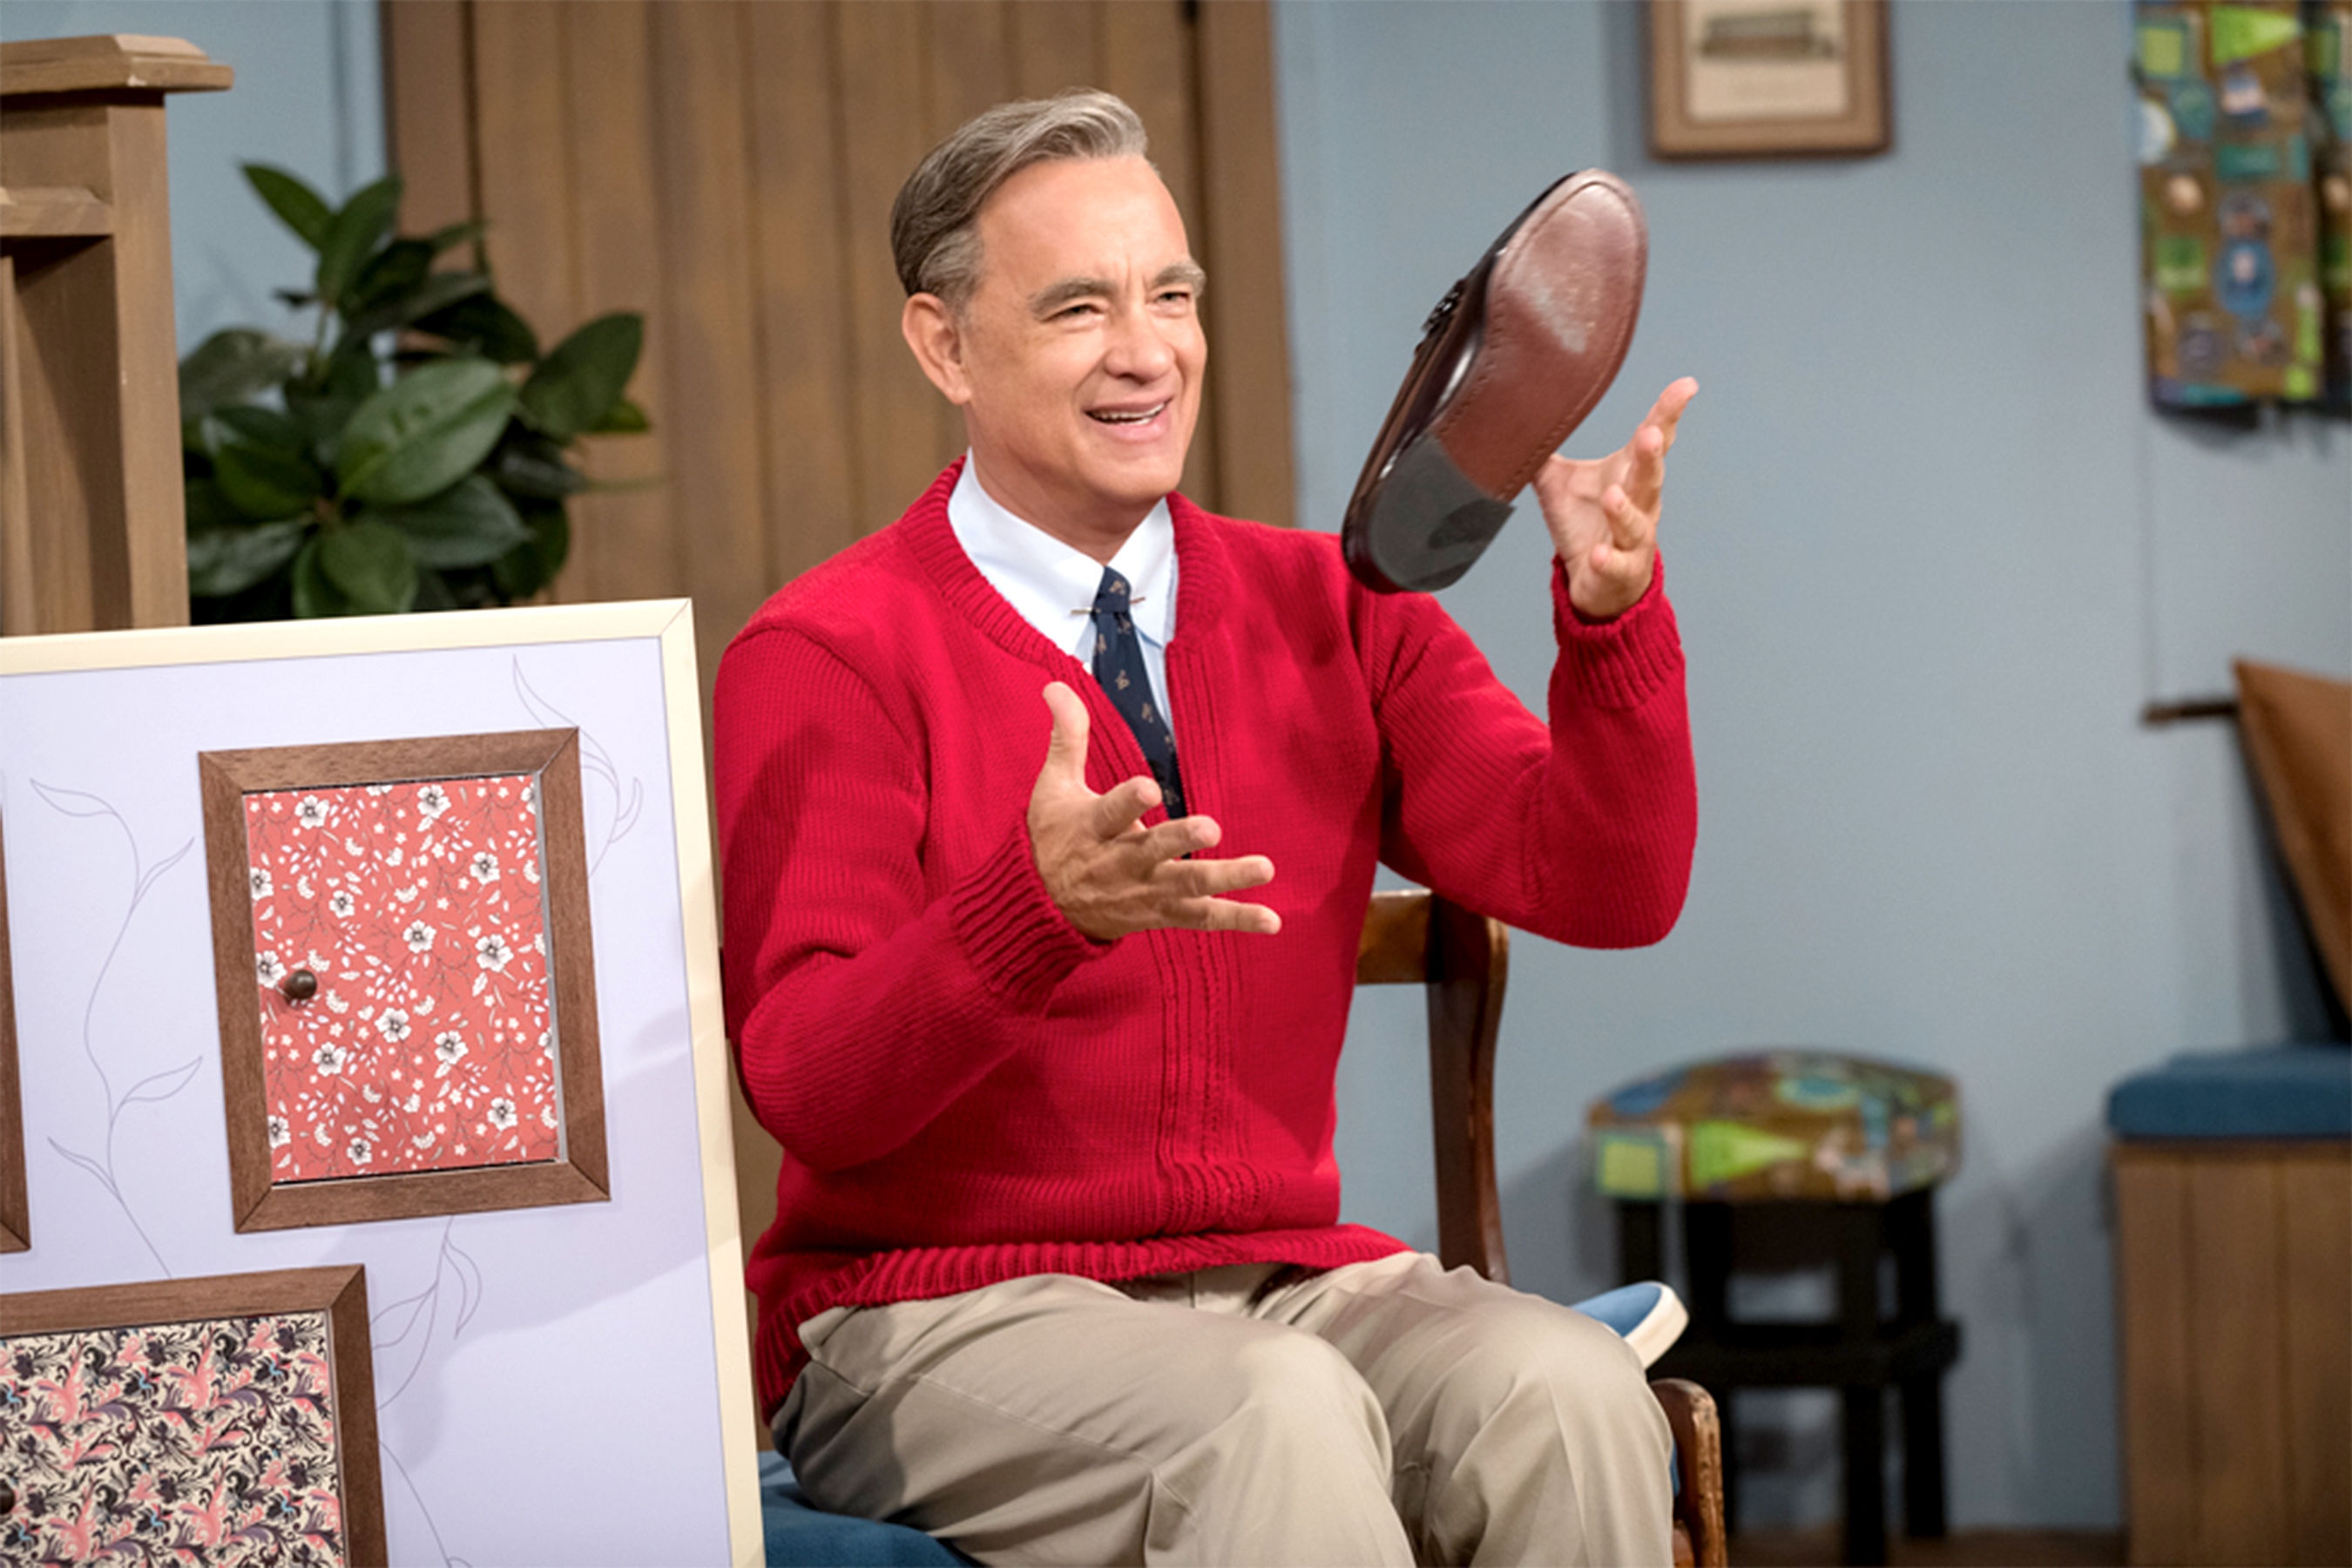 Tom Hanks Tugs at Your Heartstrings as Mr. Rogers in A Beautiful Day in the Neighborhood Trailer